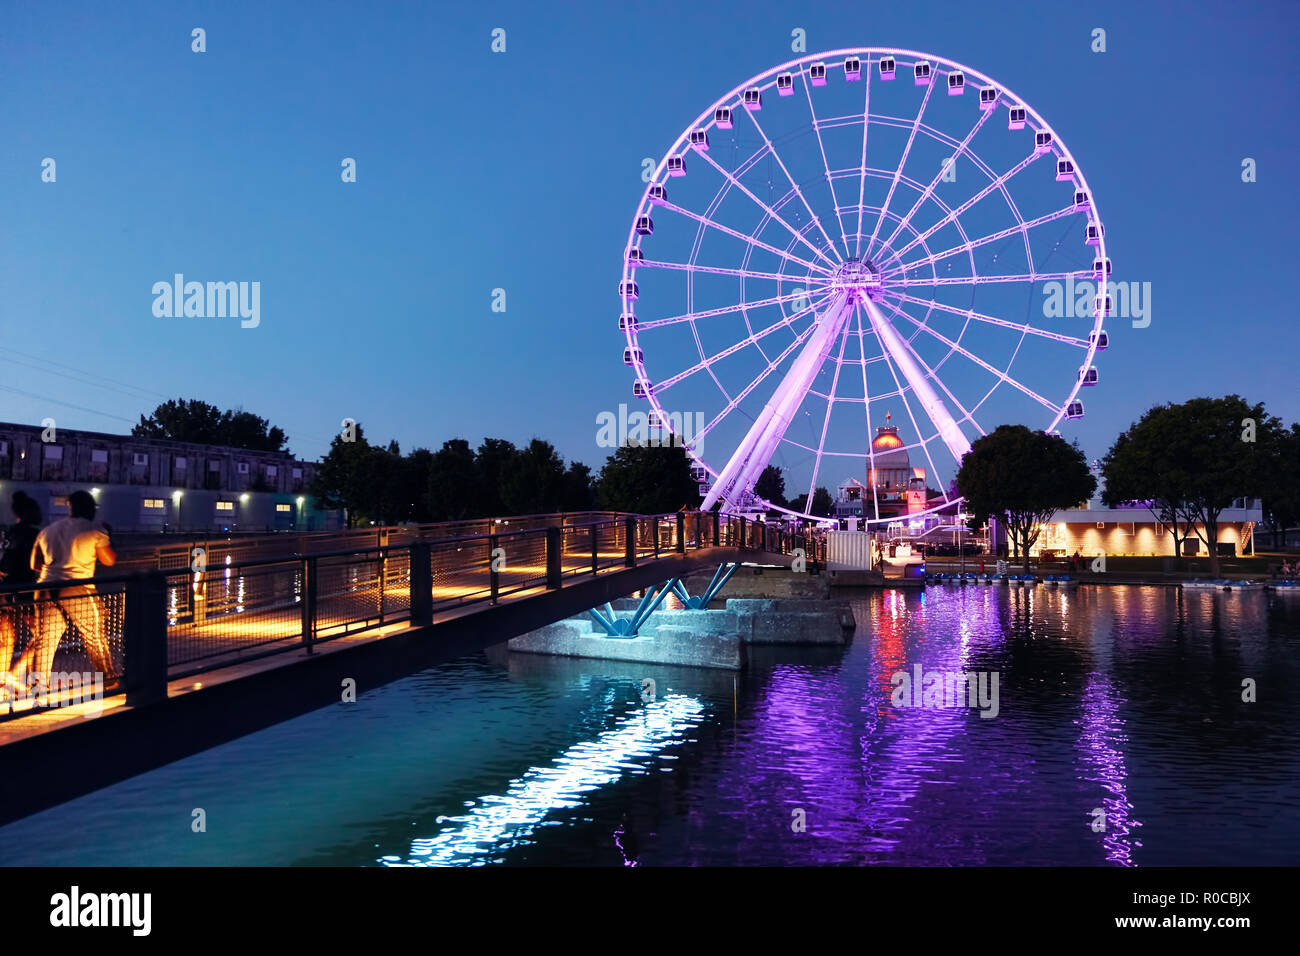 Illuminated ferris wheel (observation wheel) in old port at the blue hour of a summer evening in Montreal, Quebec, Canada - Stock Image